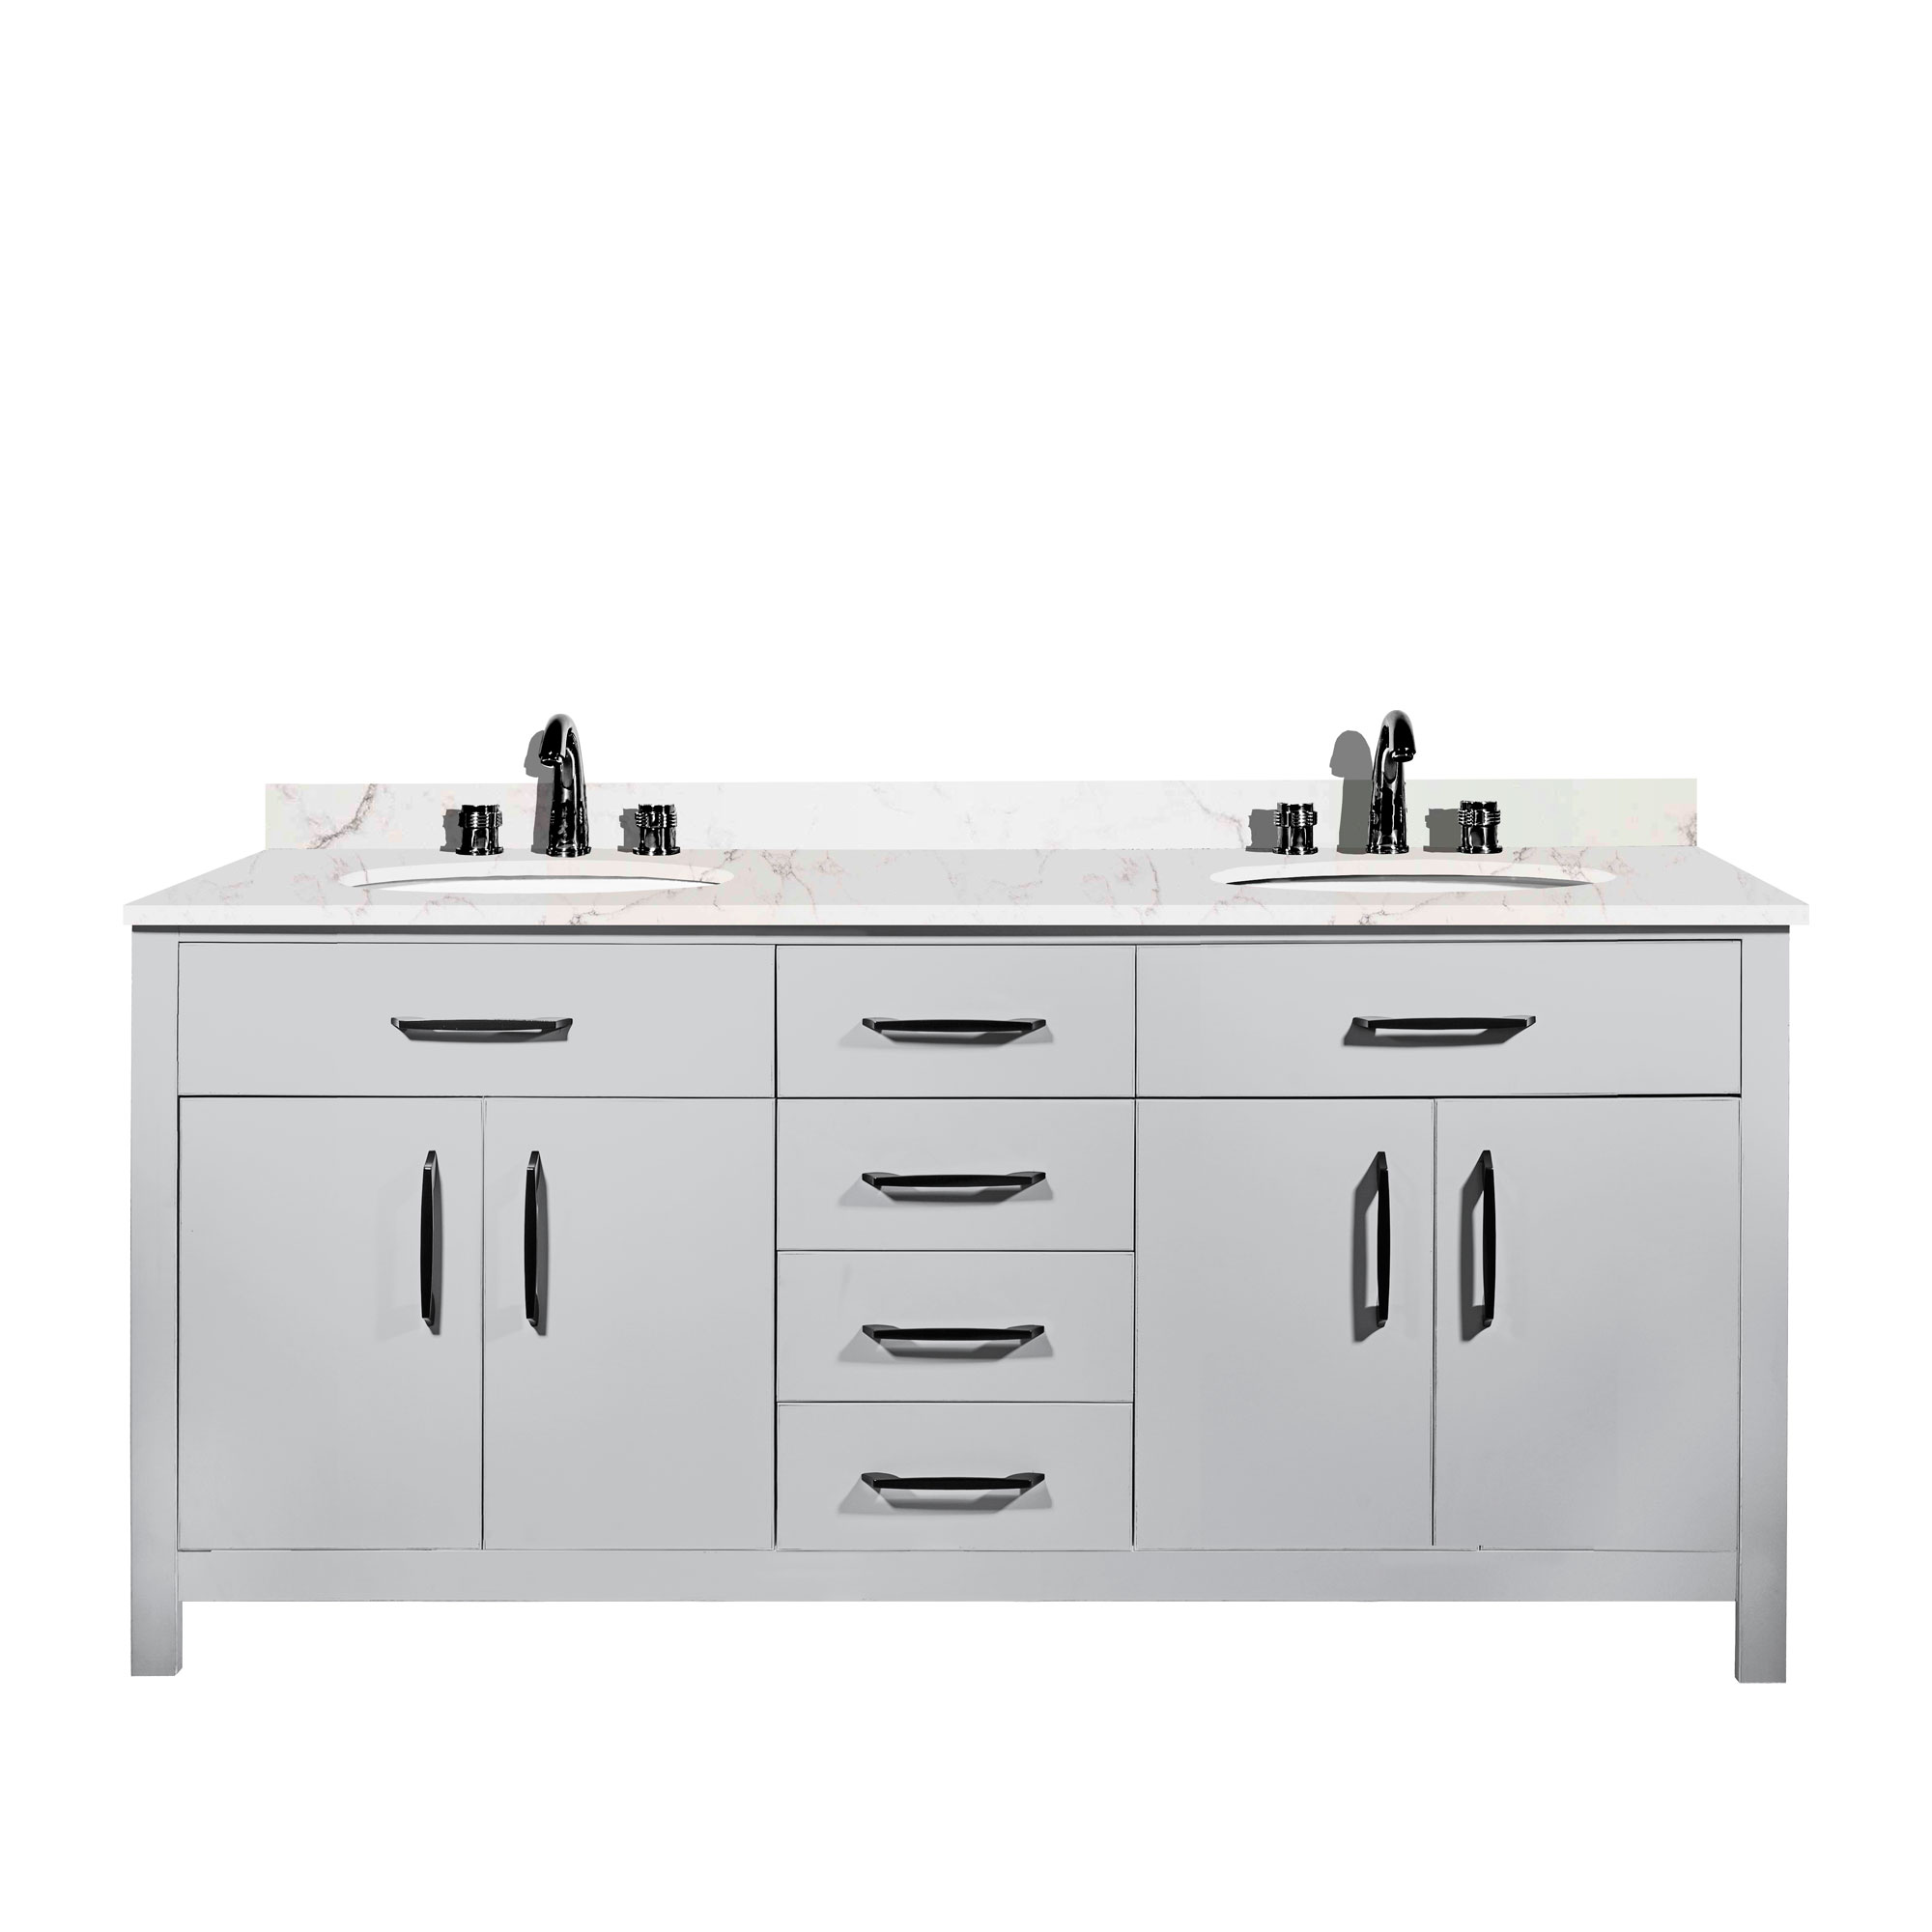 20 Inches Silver Gray Color Wood Decor Double Sink Vanity ...